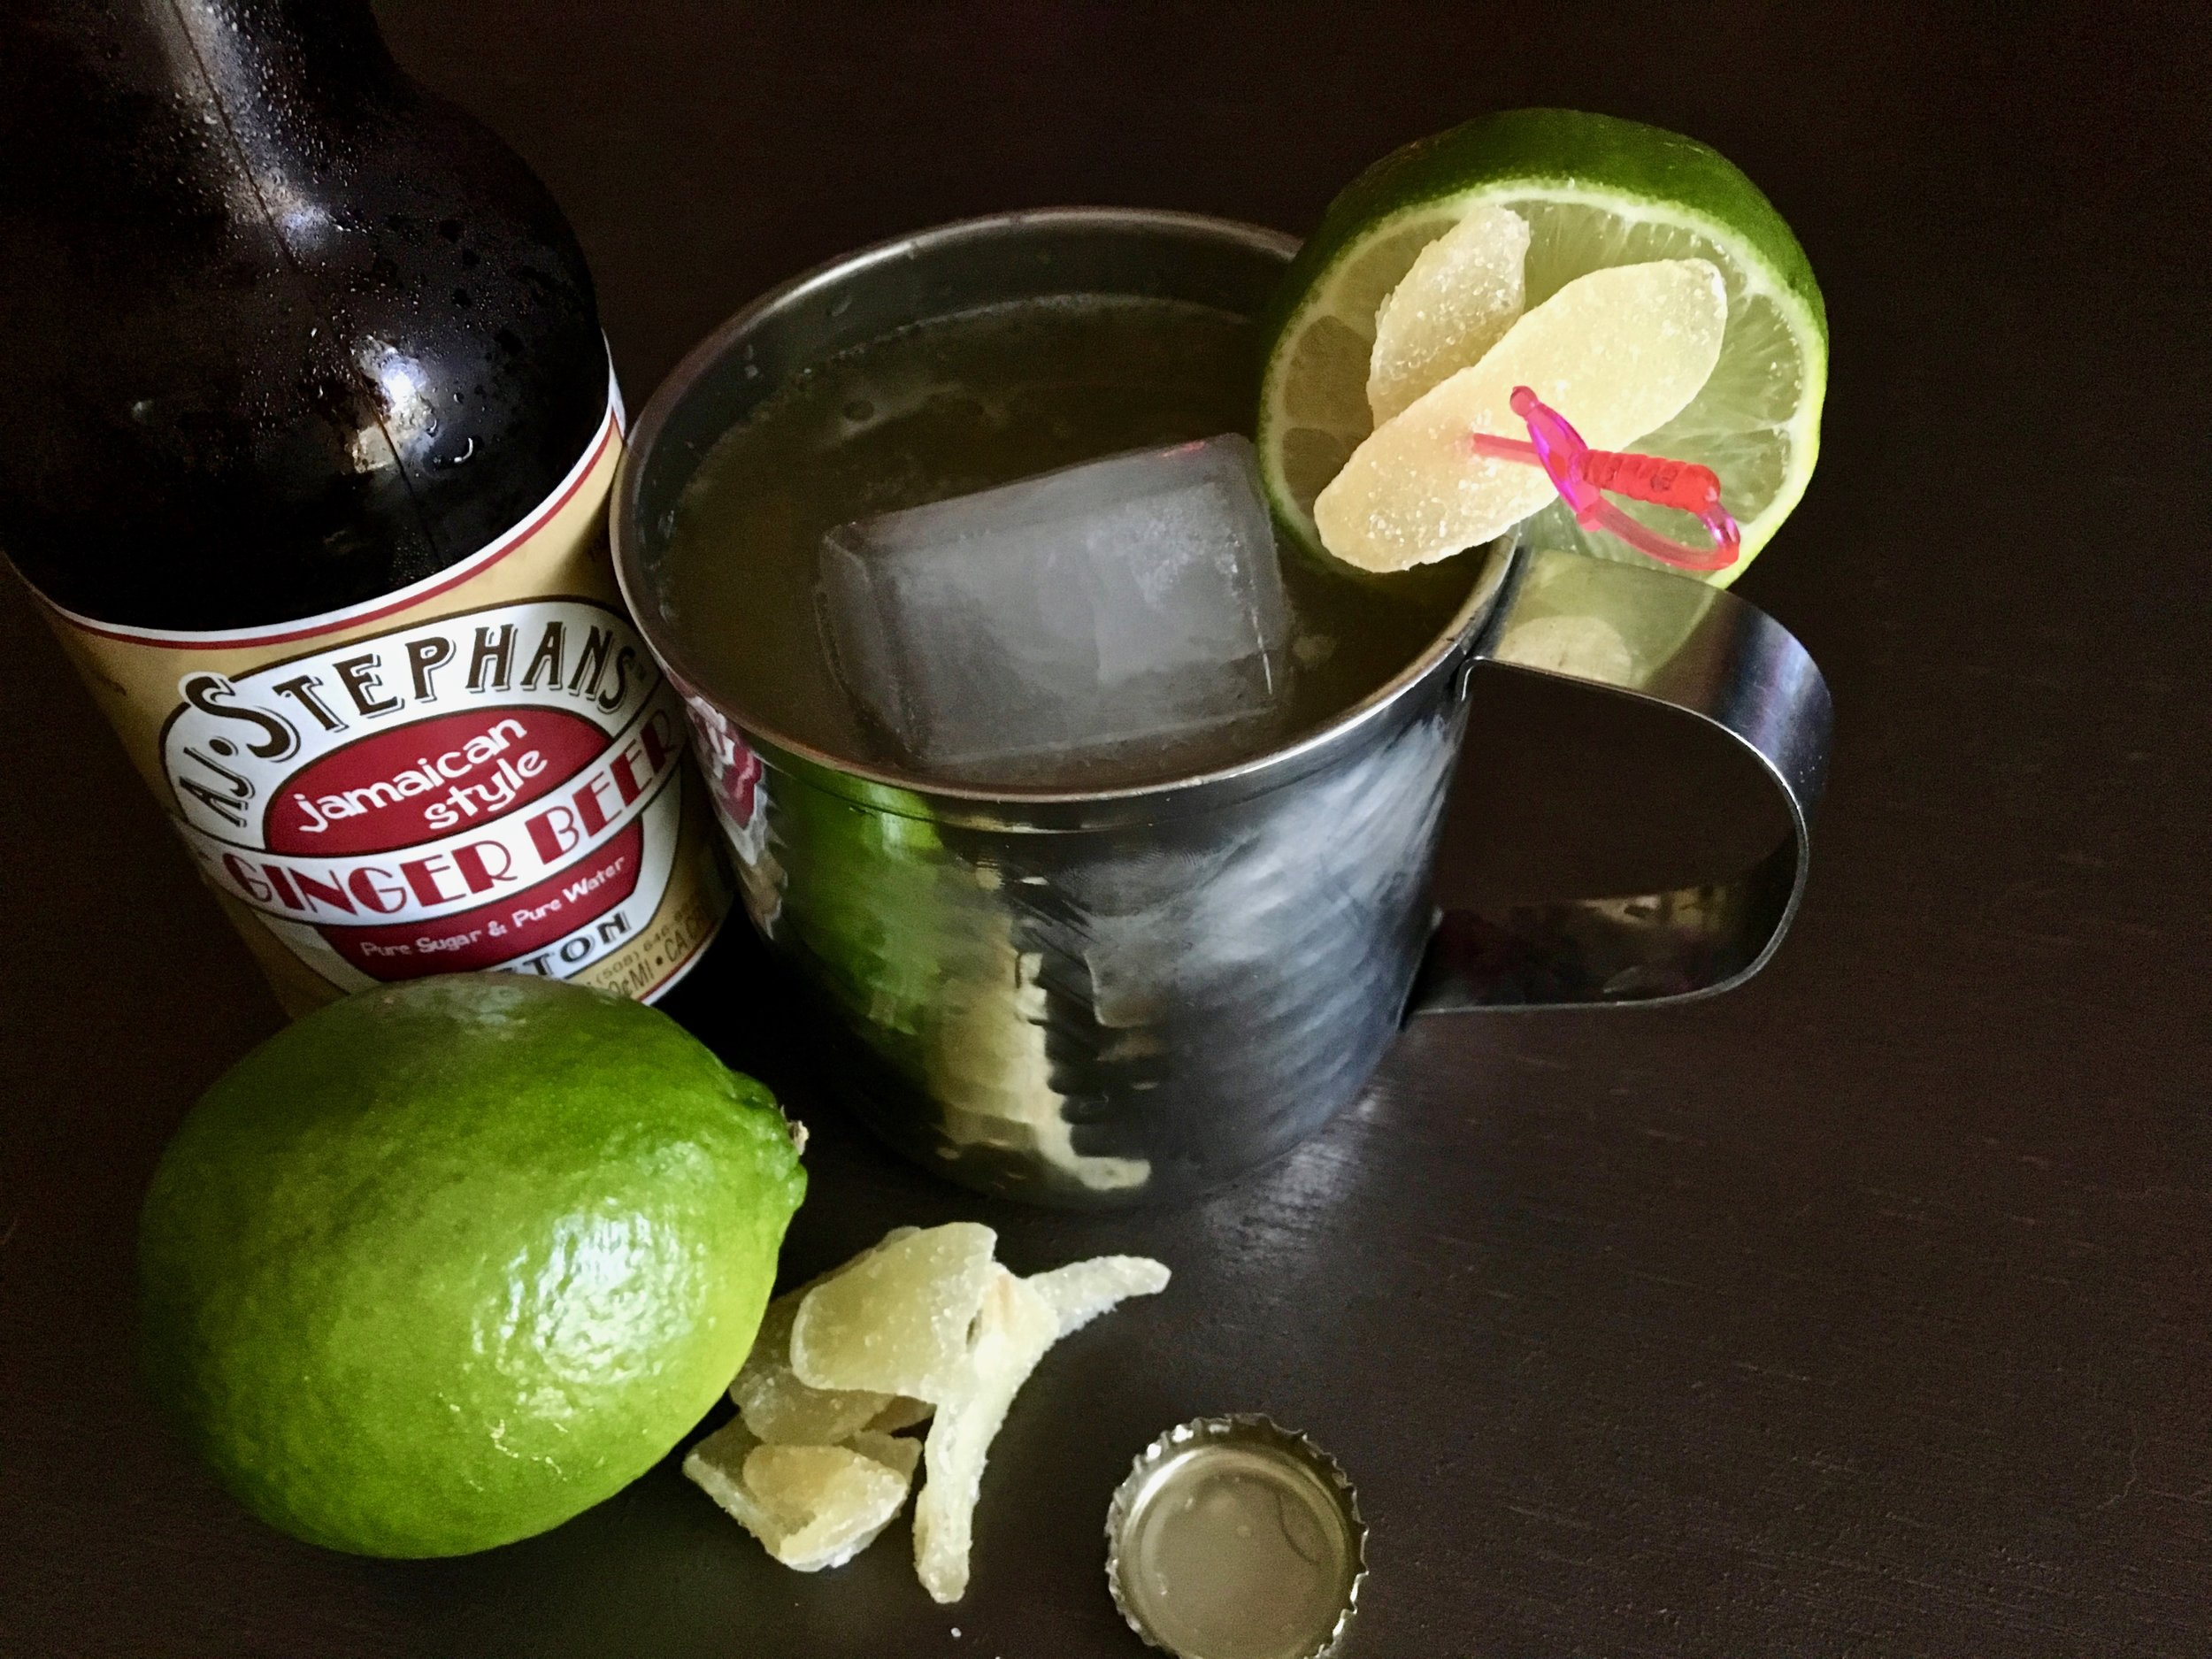 A better mule, the Russian Troll amps up the ginger and uses good ol' rum instead of flavorless vodka.